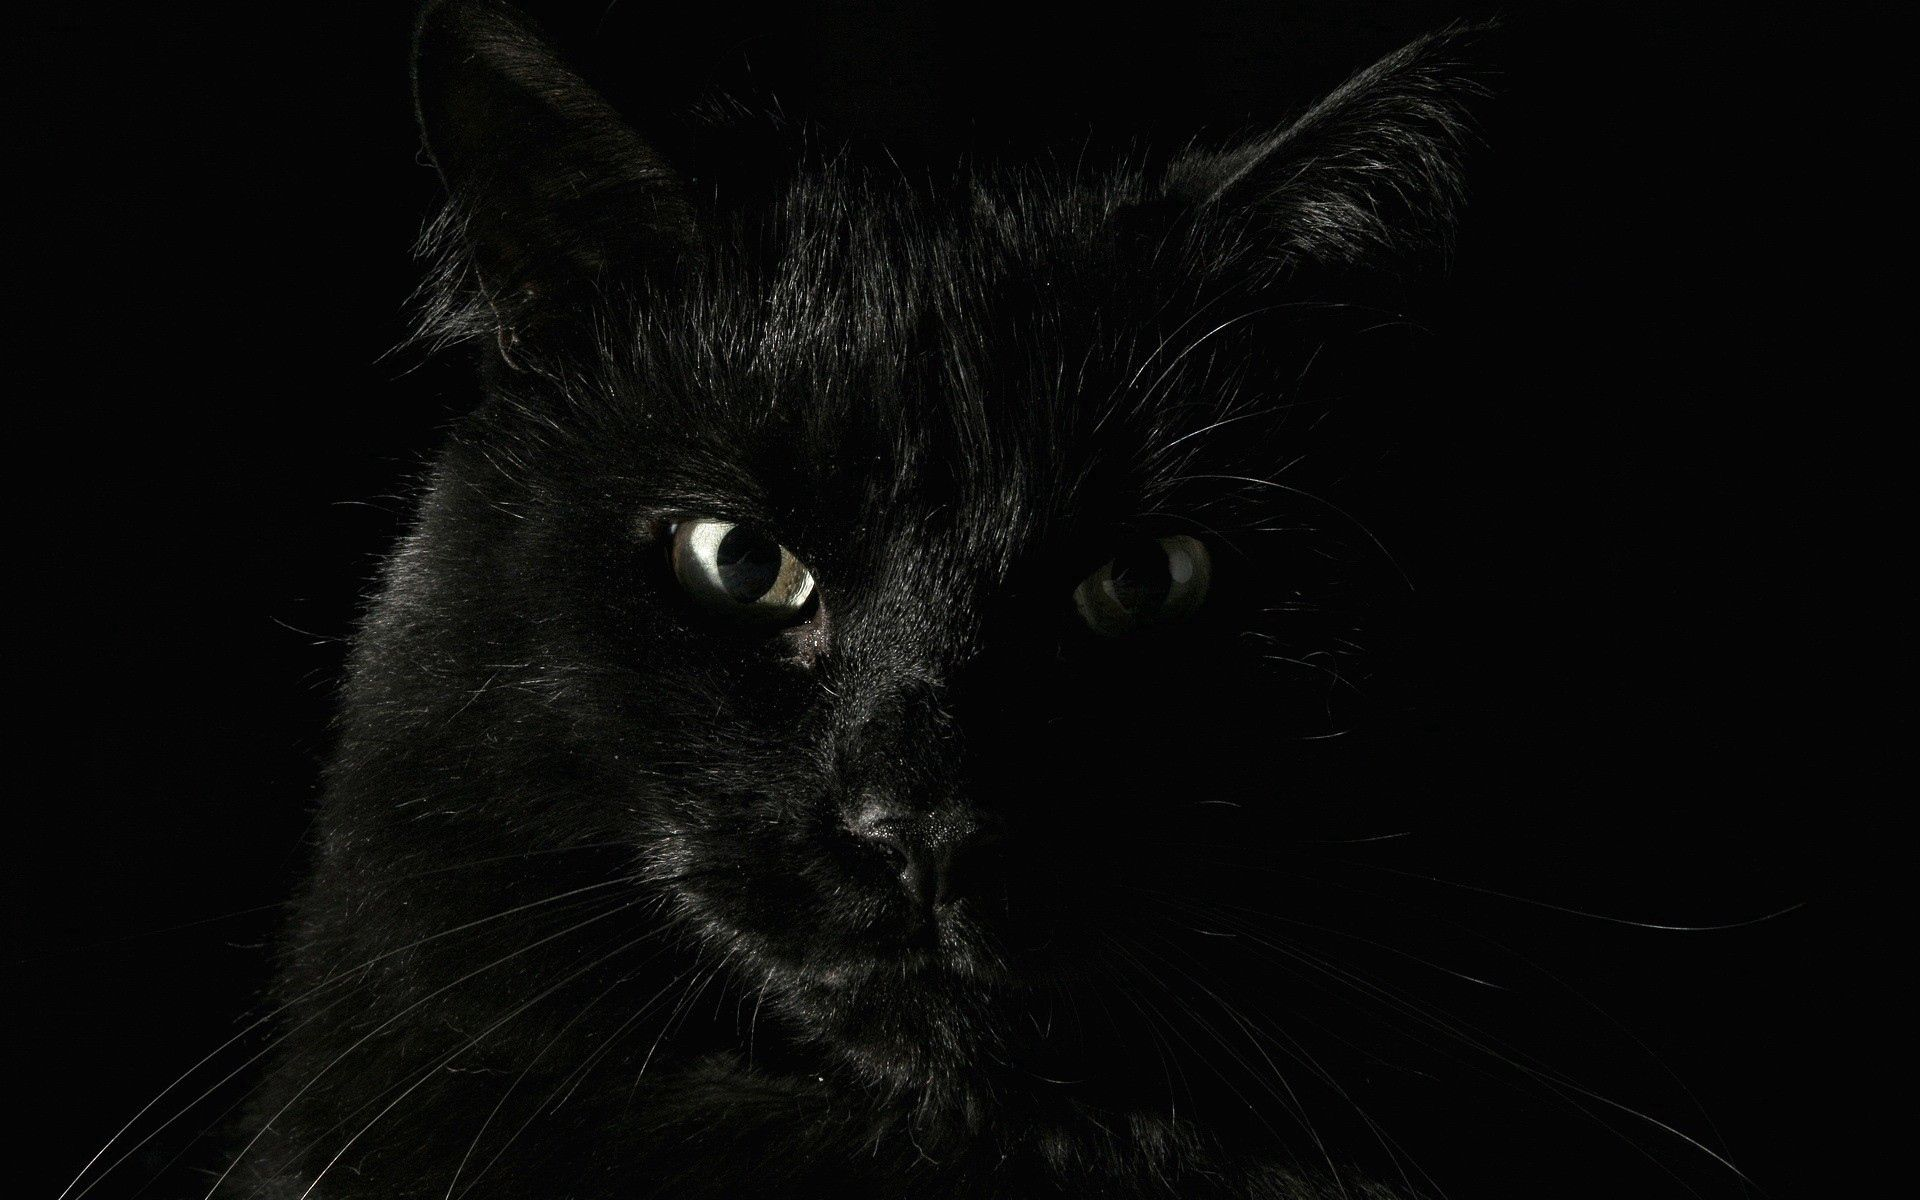 111347 download wallpaper Fear, Cat, Muzzle, Eyes screensavers and pictures for free